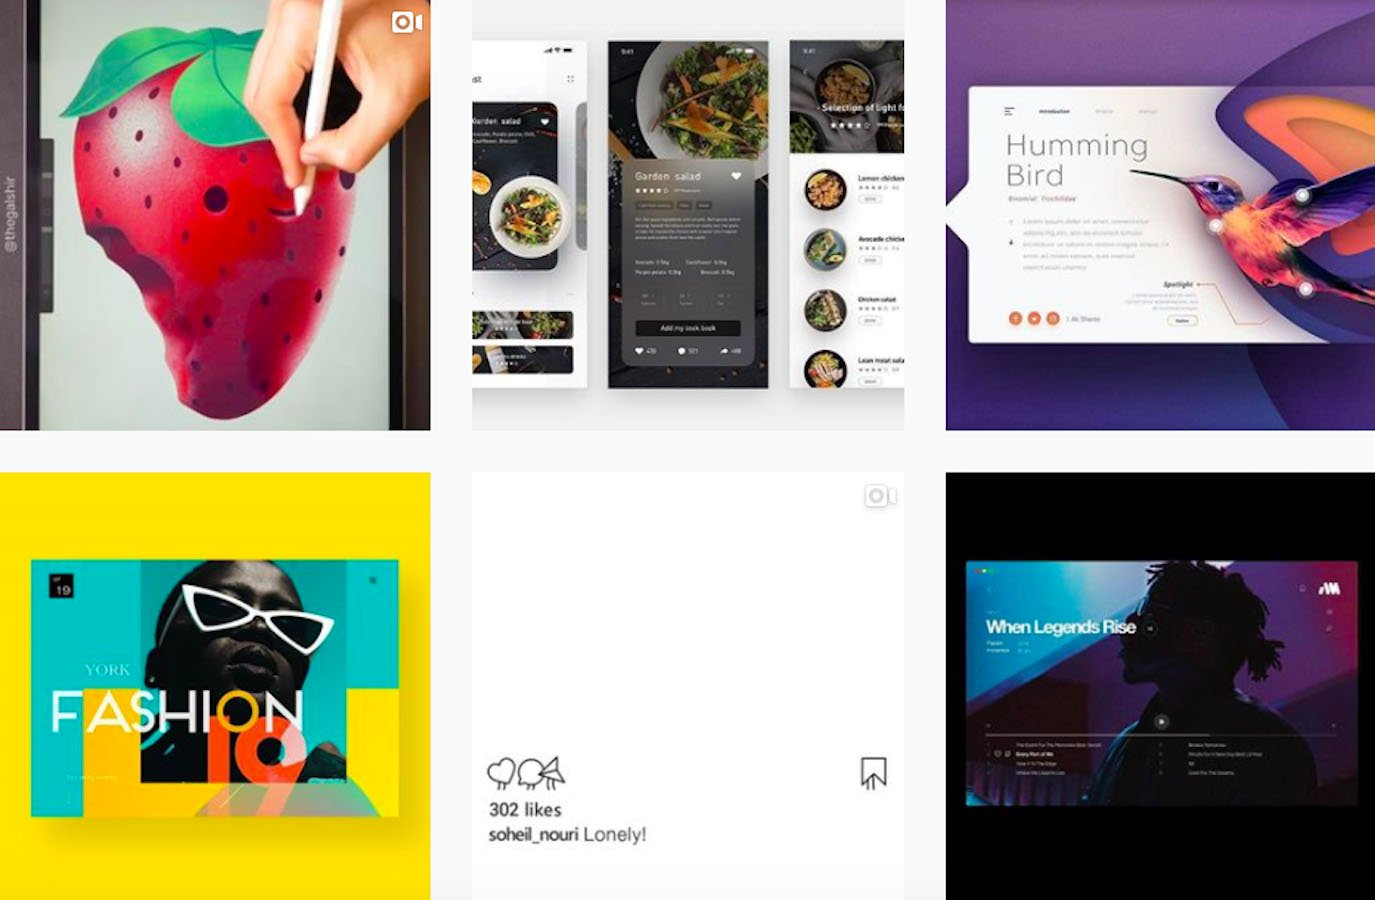 Web Design Inspiration: 110+ Accounts On Instagram and 10+ Best UX & Web Design Books in 2020 - graphicdesignui